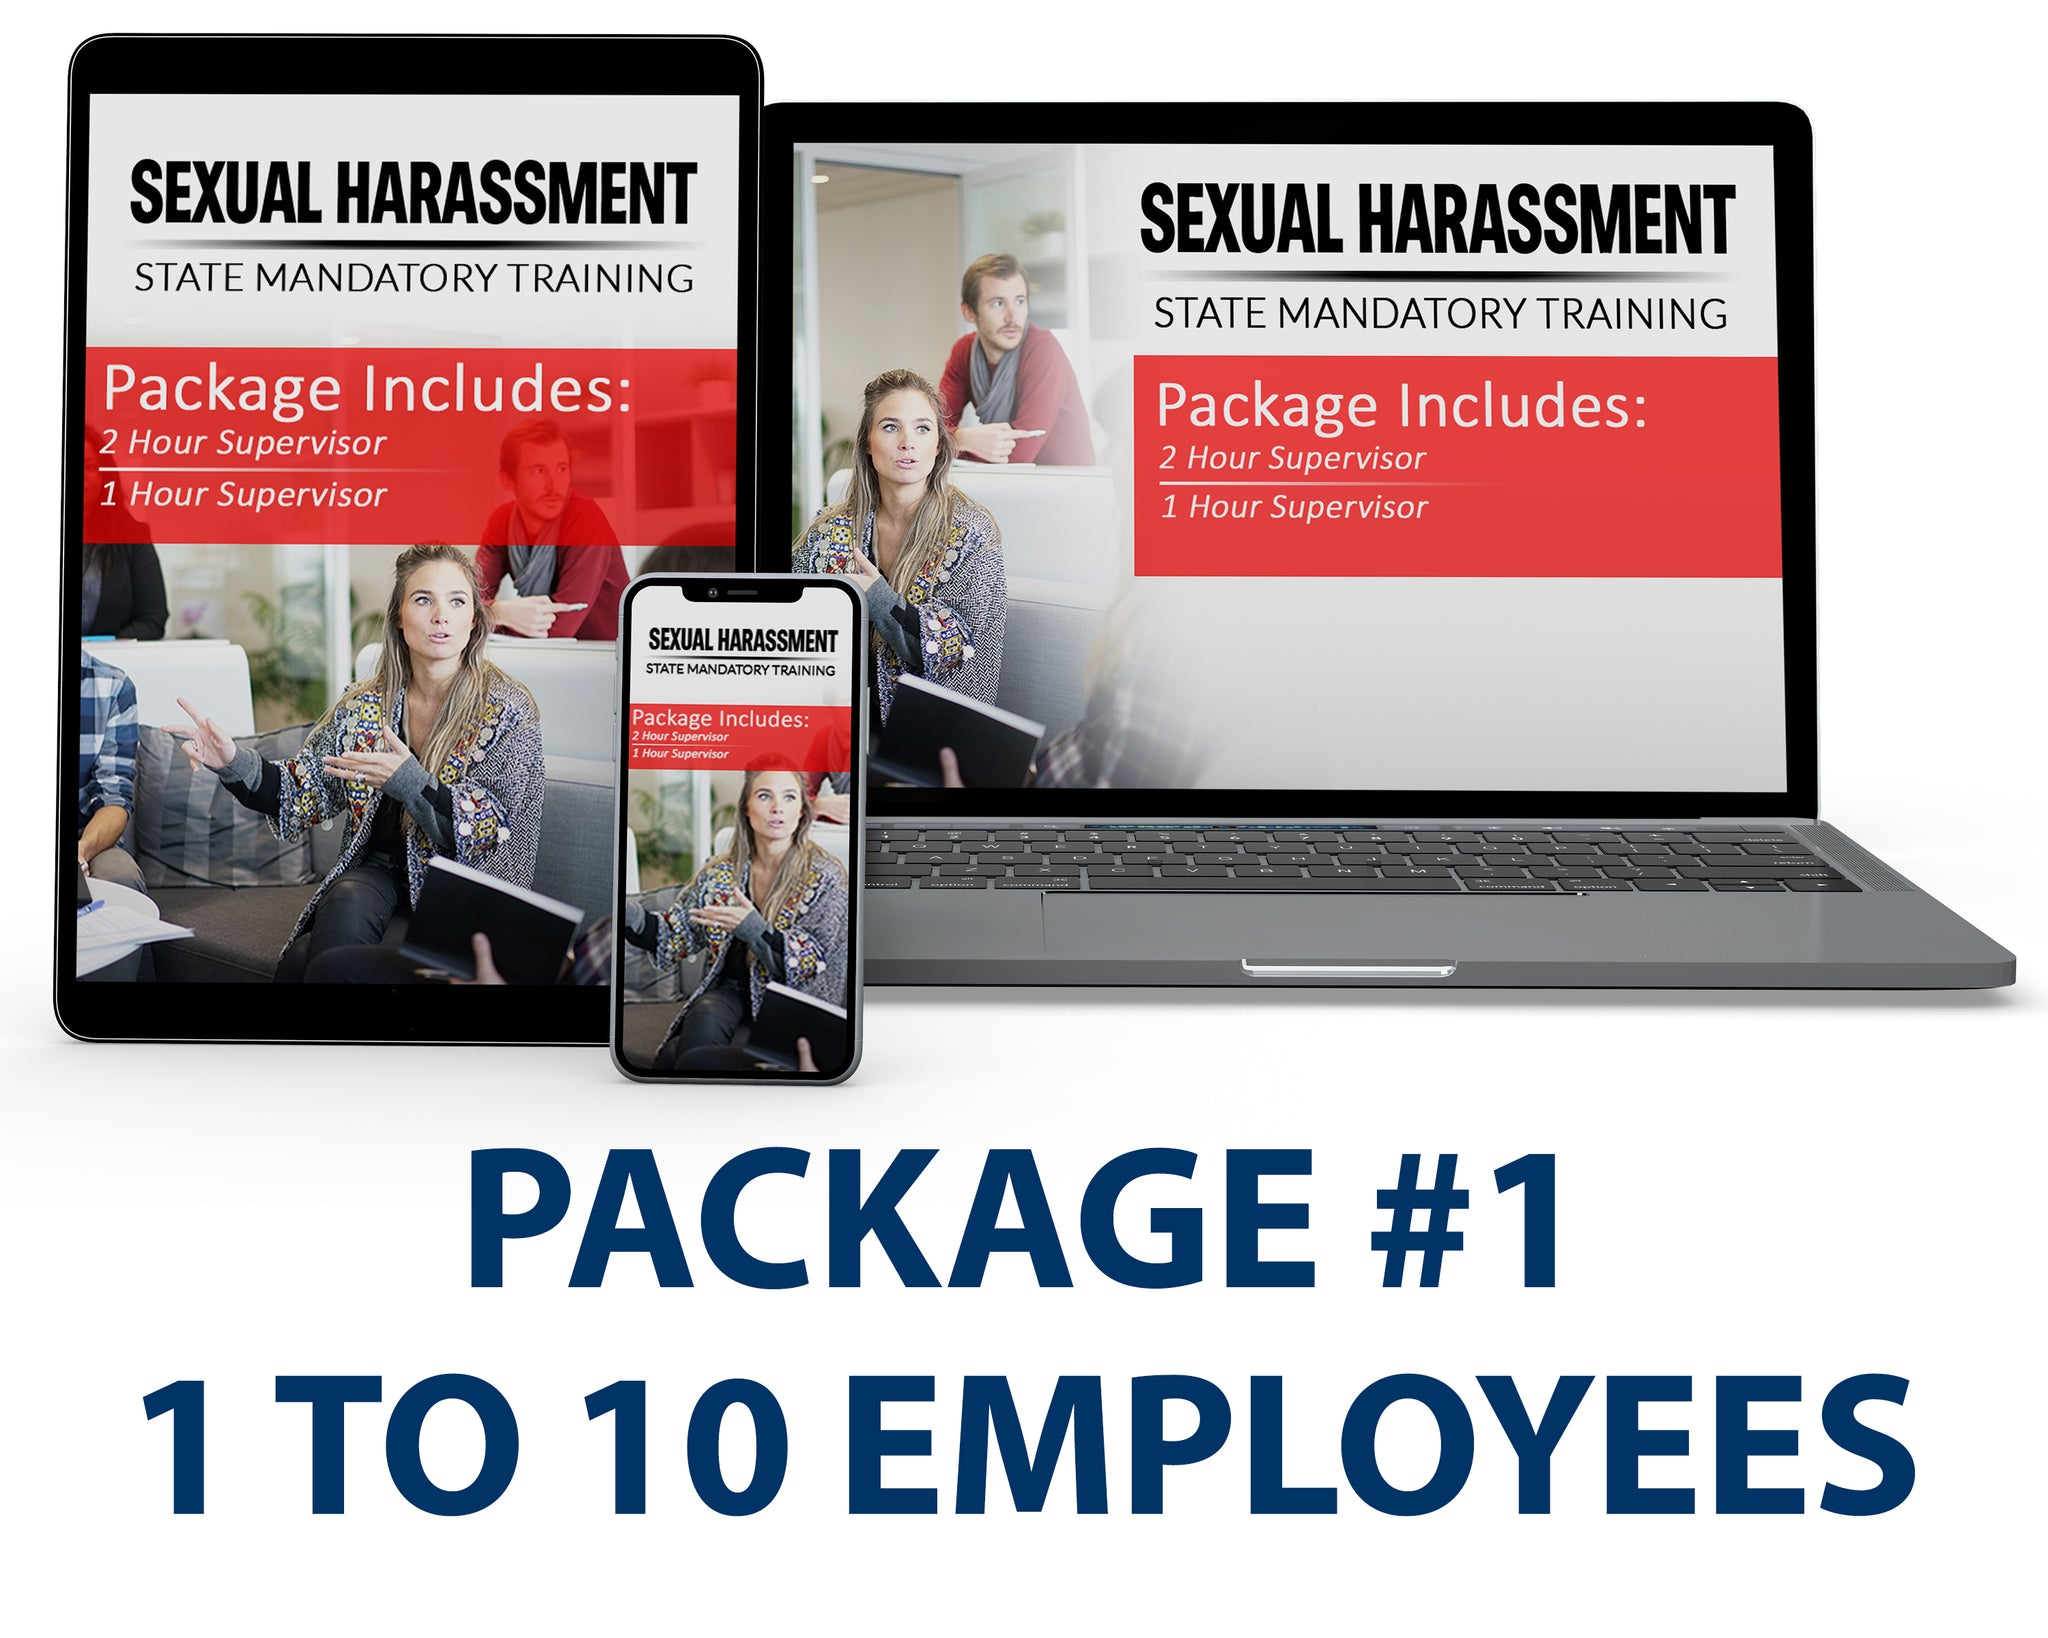 Wilson Elser CA - SB 1343 Package #1 (1-10 Employees)